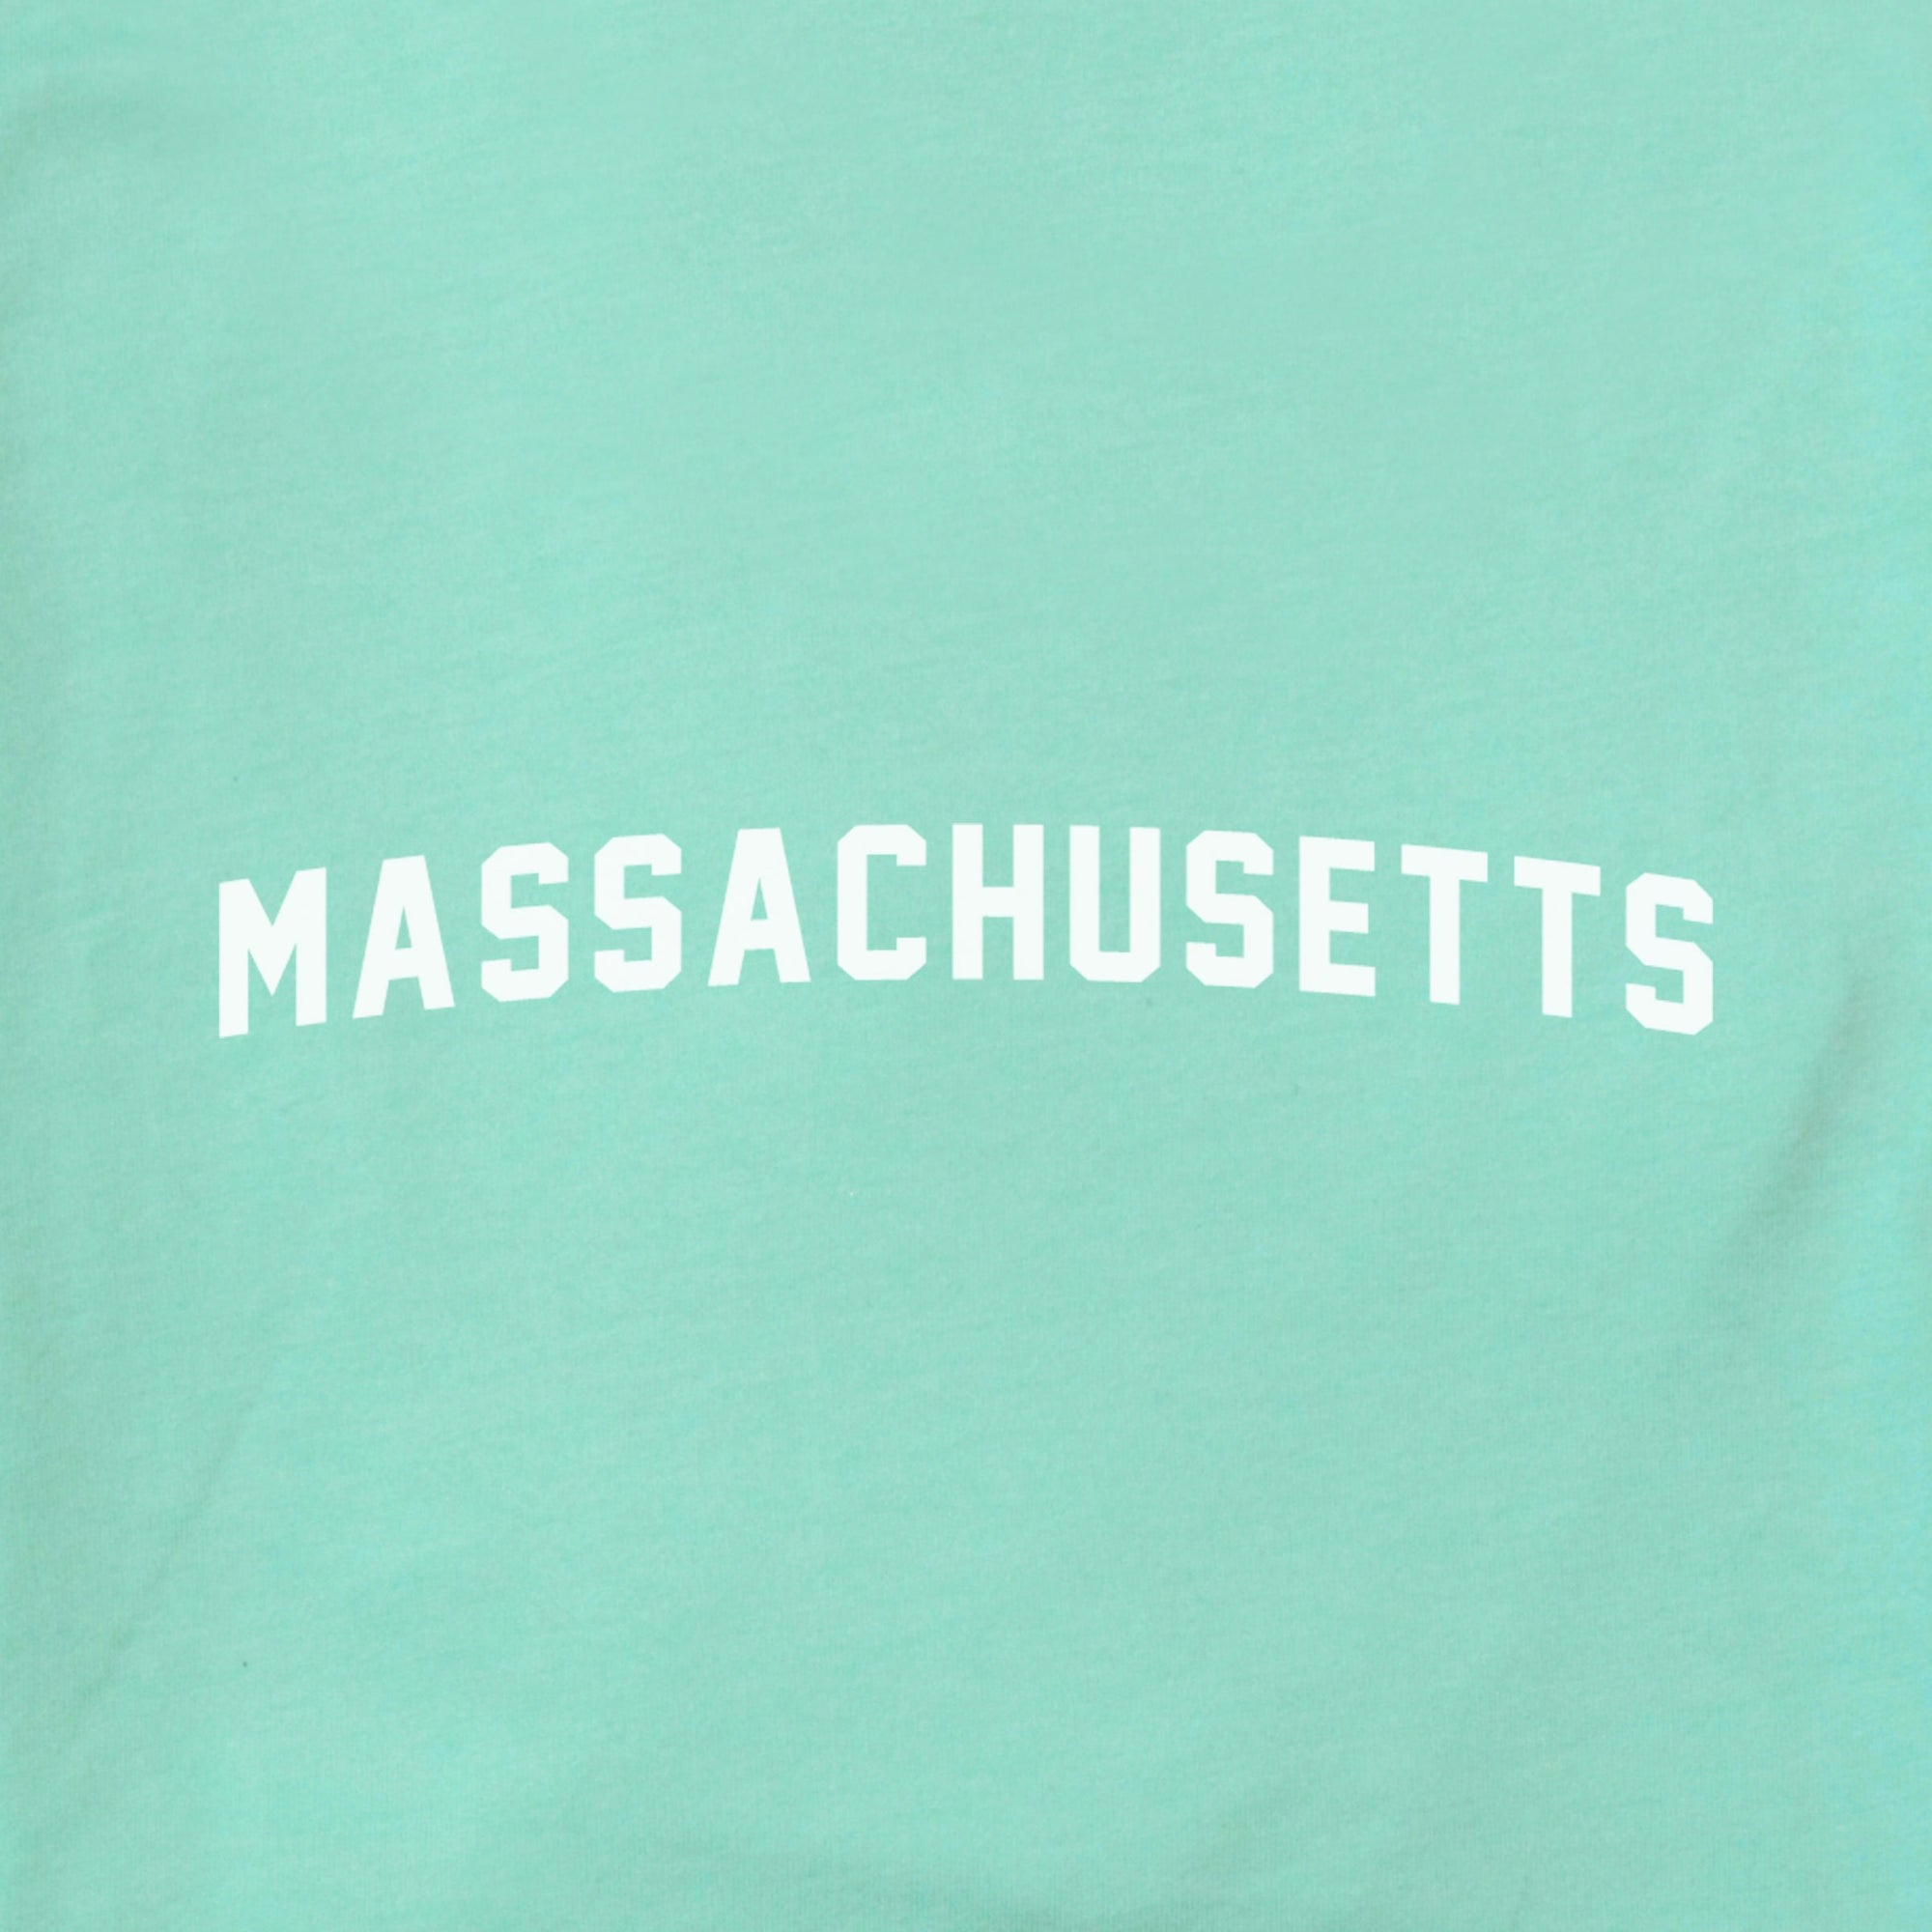 Massachusetts Arched The Home T XS Mint